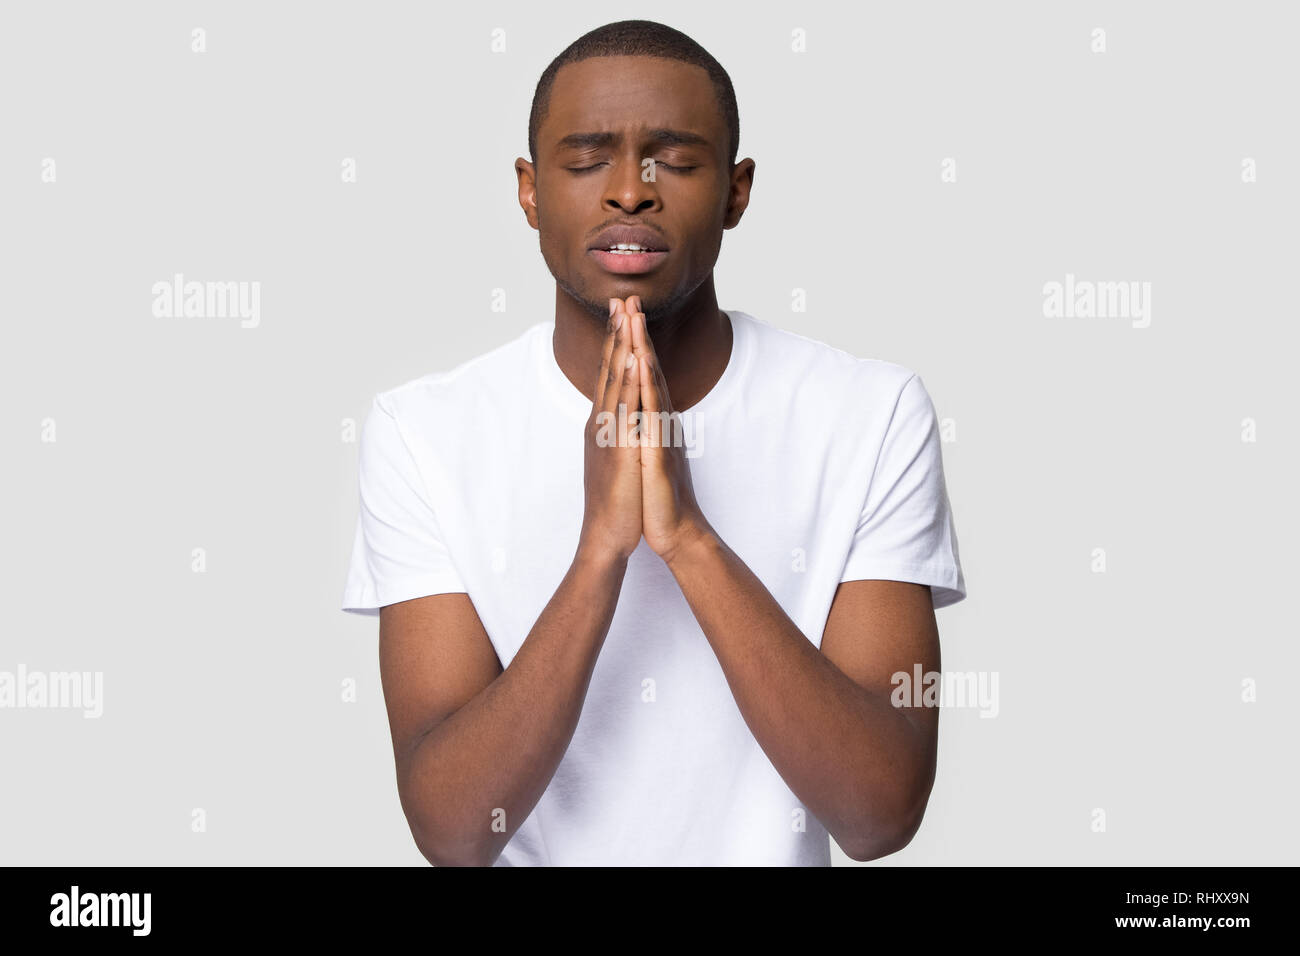 Black Guy High Resolution Stock Photography And Images Alamy